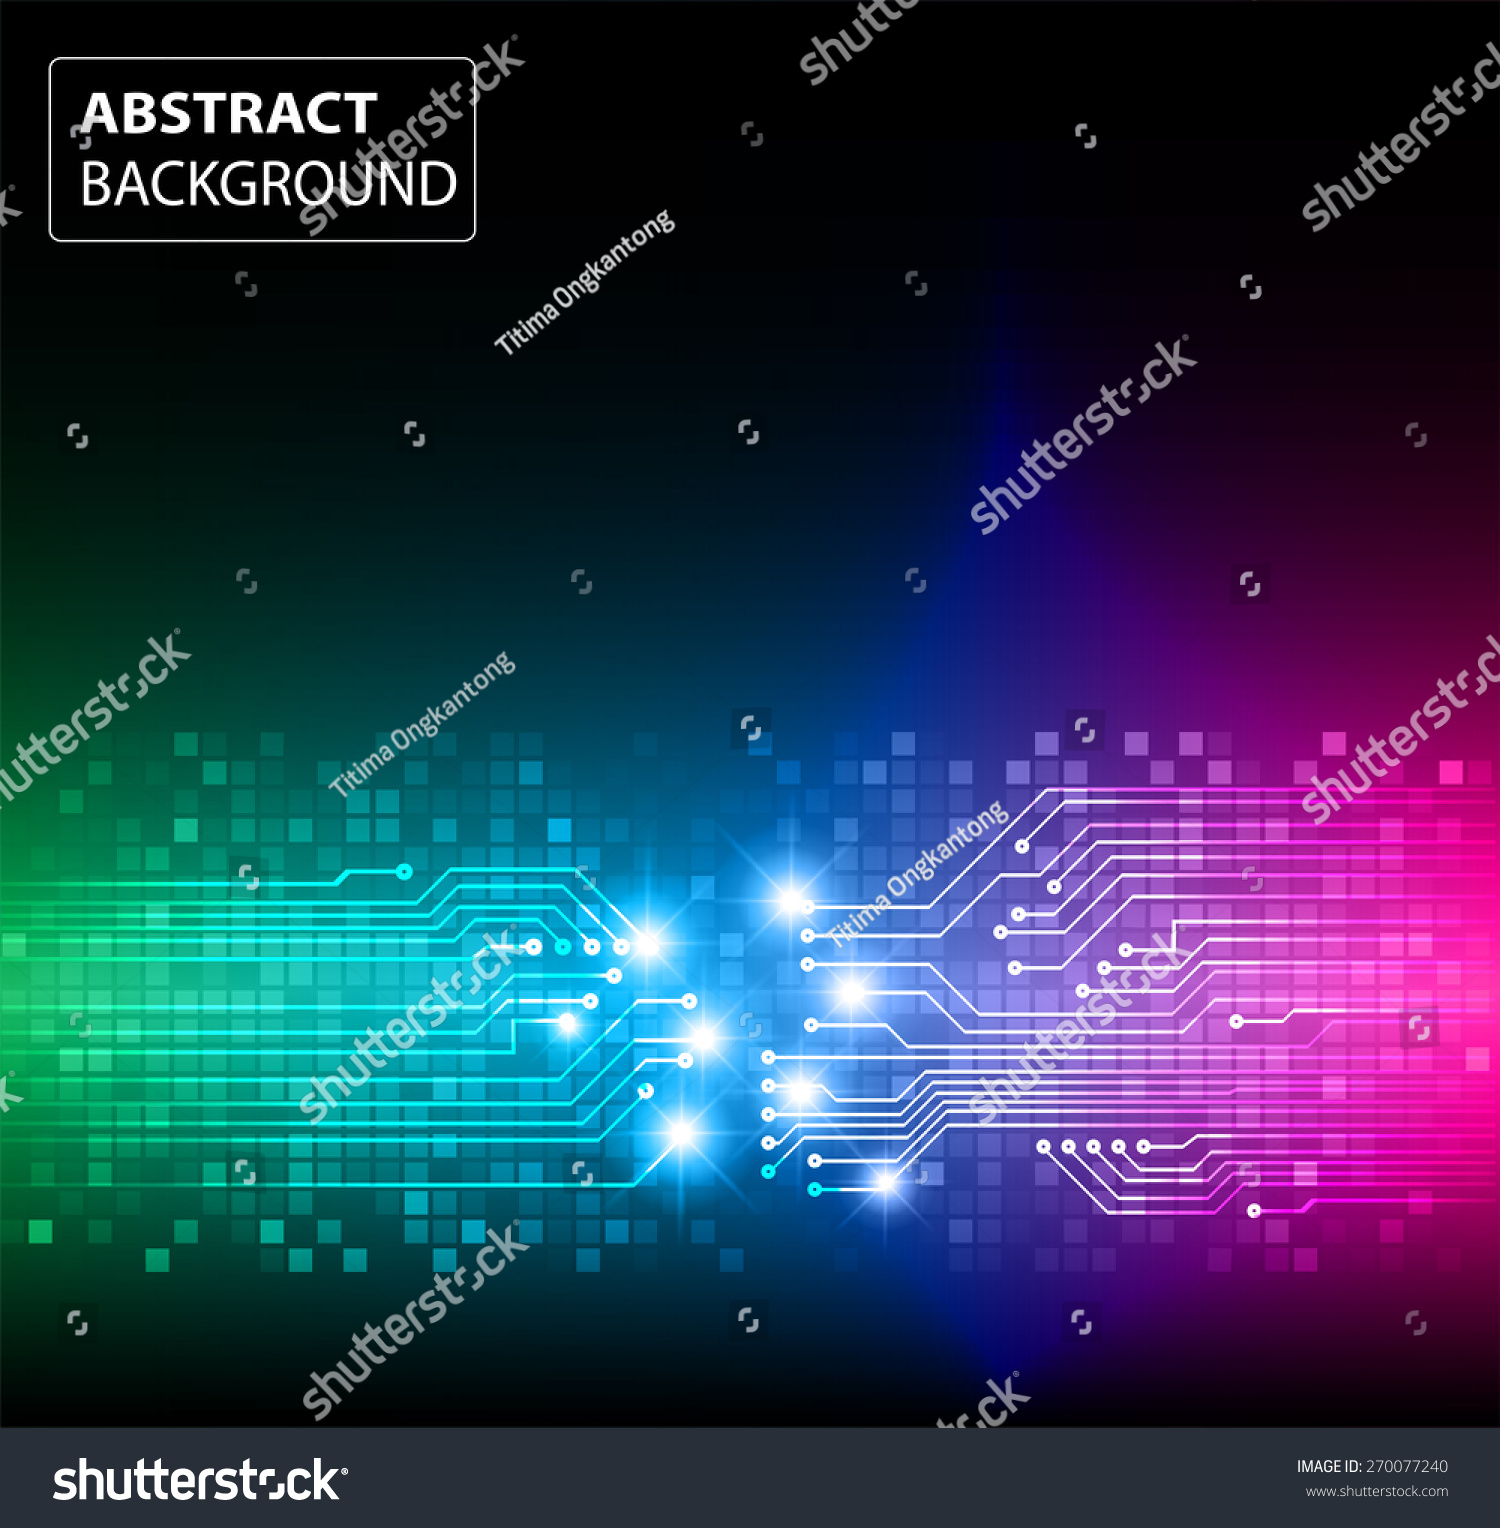 website colors neon : Dark Green Blue Pink Color Light Abstract Technology Background For Computer Graphic Website Internet And Business